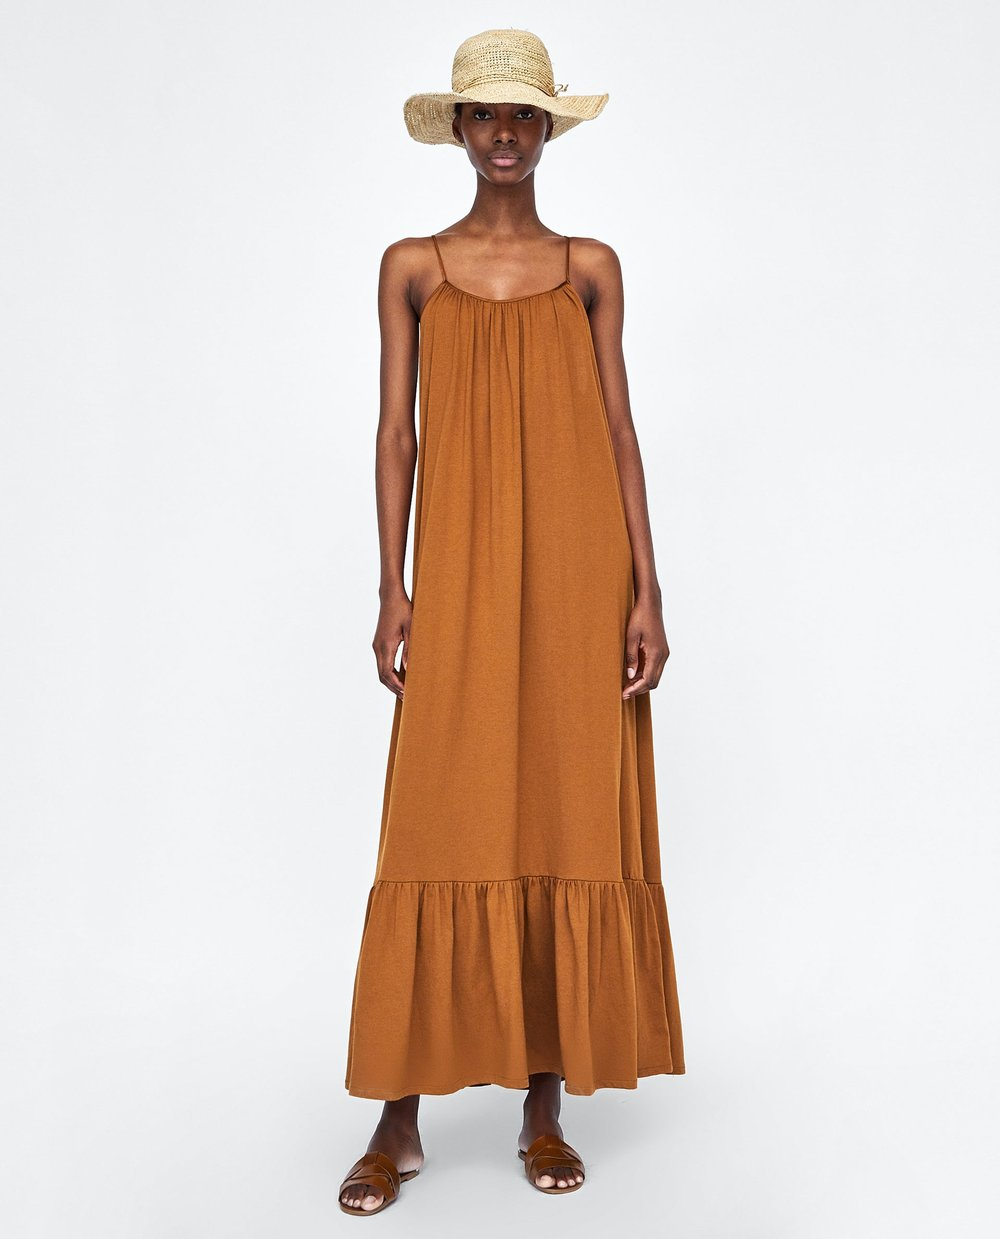 Zara-Long-Frilled-Dress.jpg